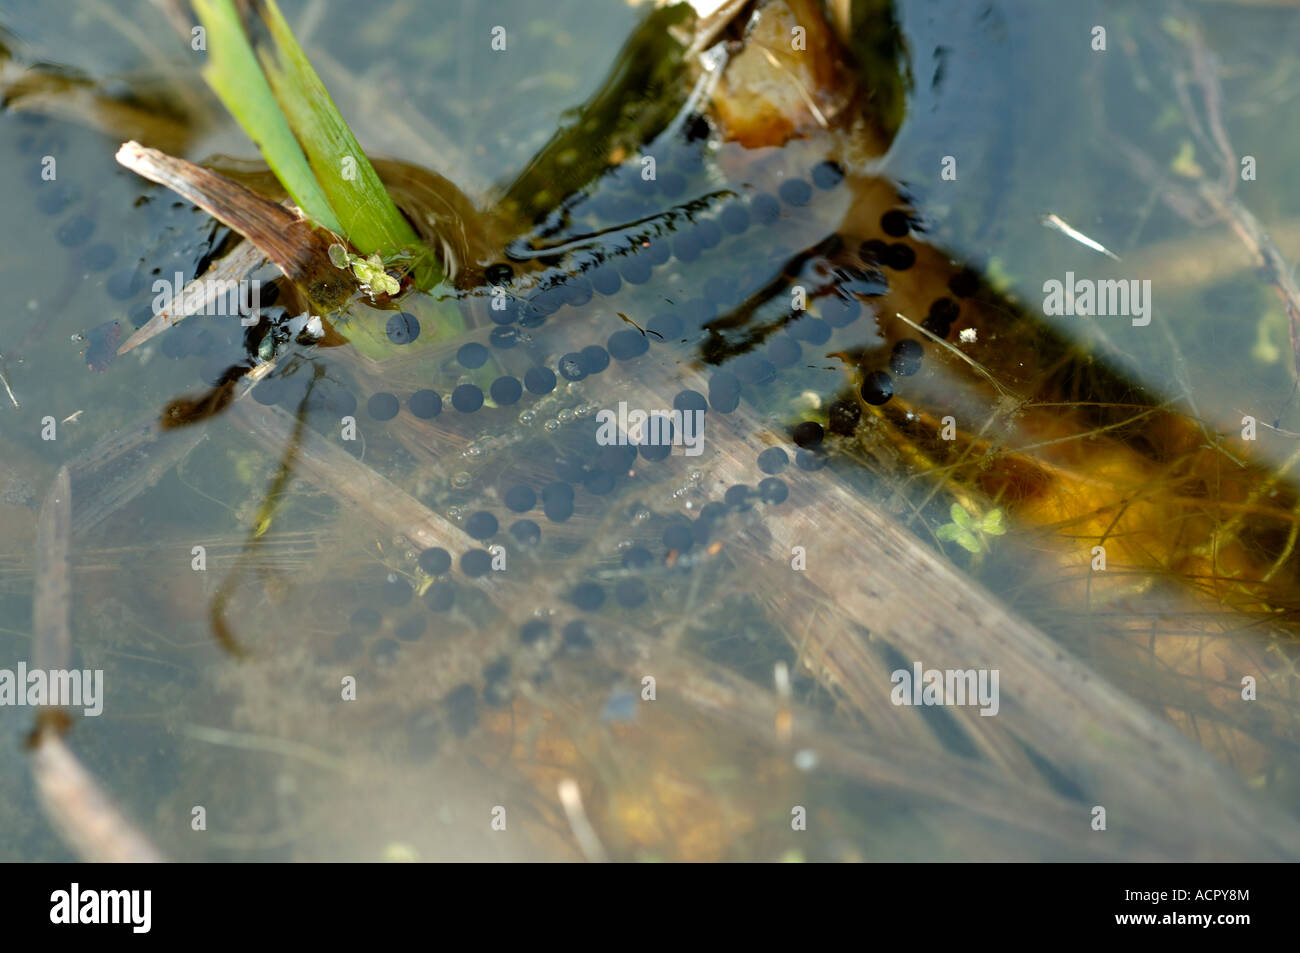 Strings of toad spawn Bufo bufo in a garden pond - Stock Image